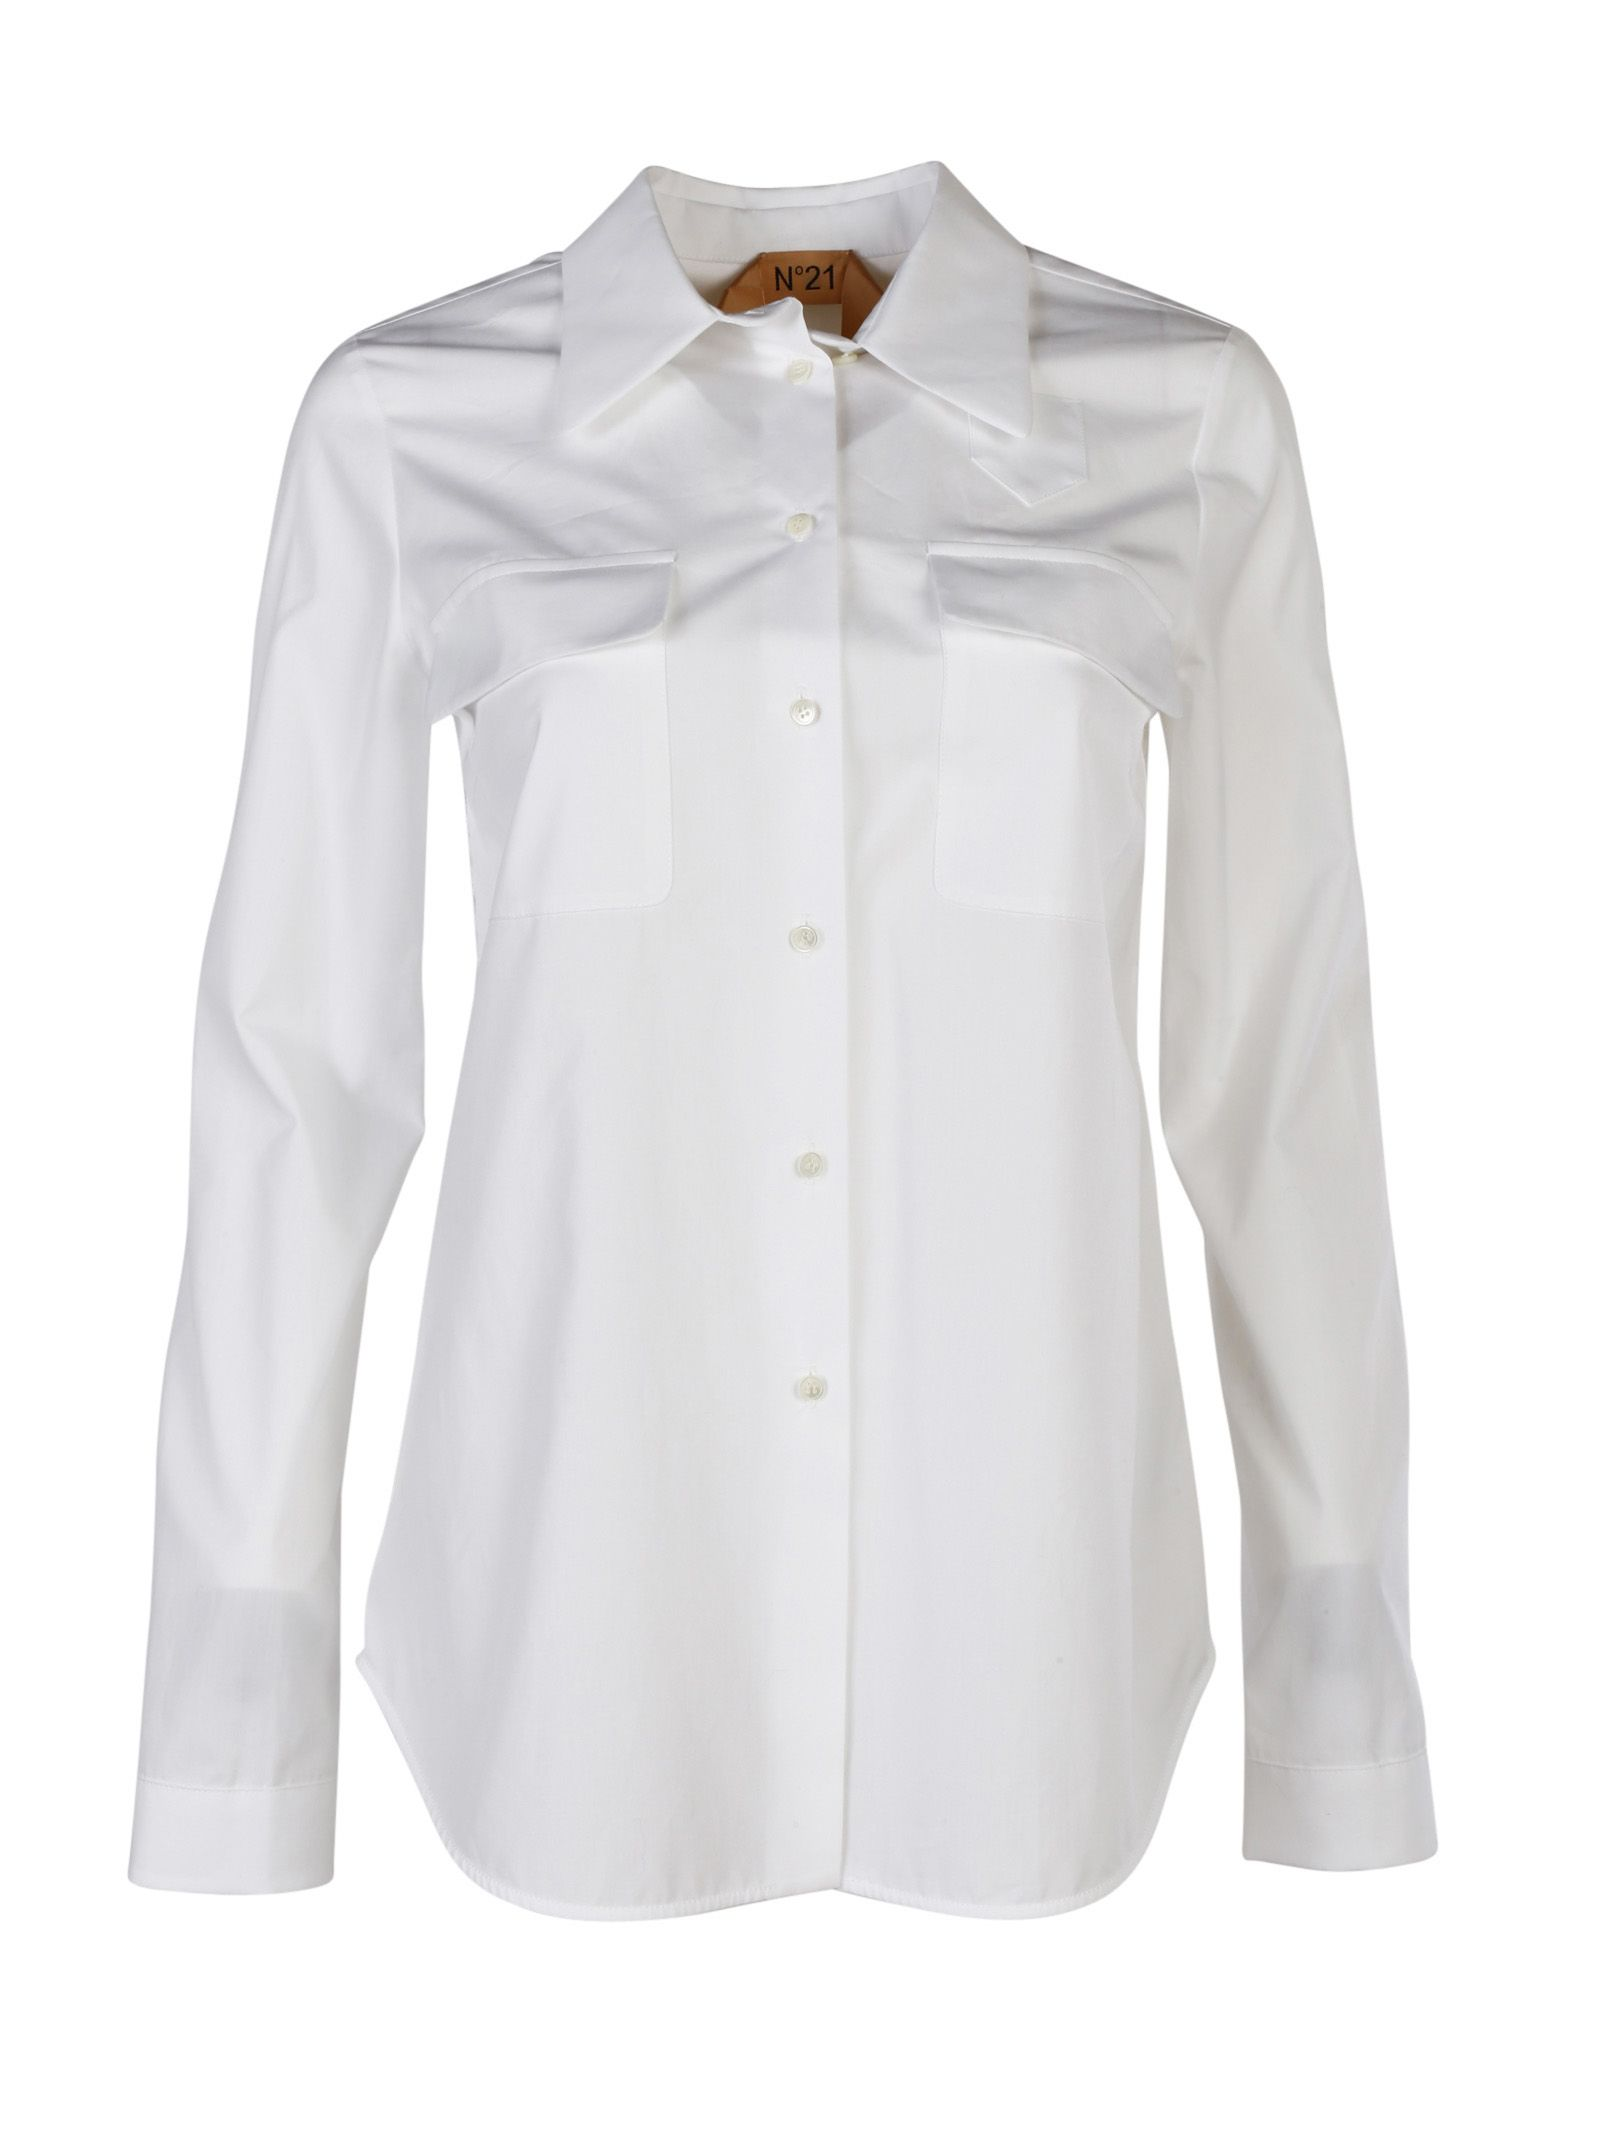 N°21 Pocket Shirt